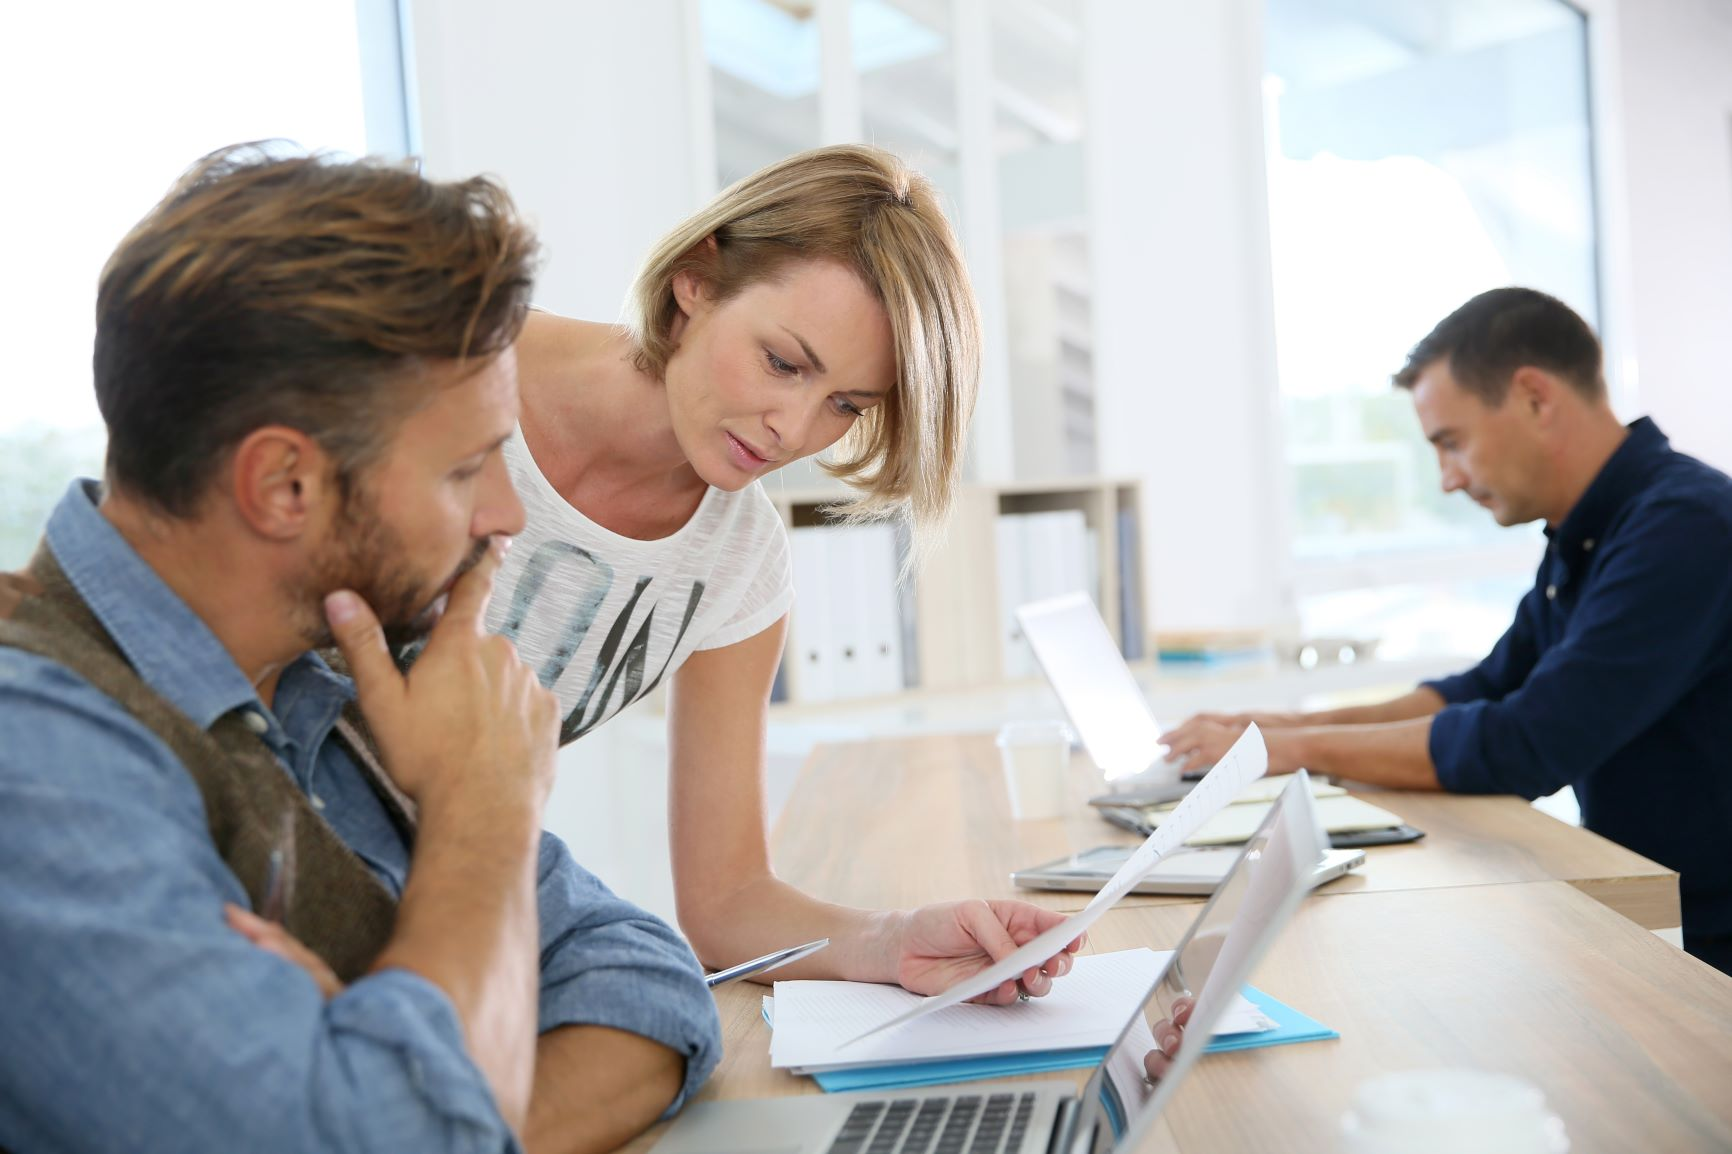 Following 3 steps to evaluating CRM implementation